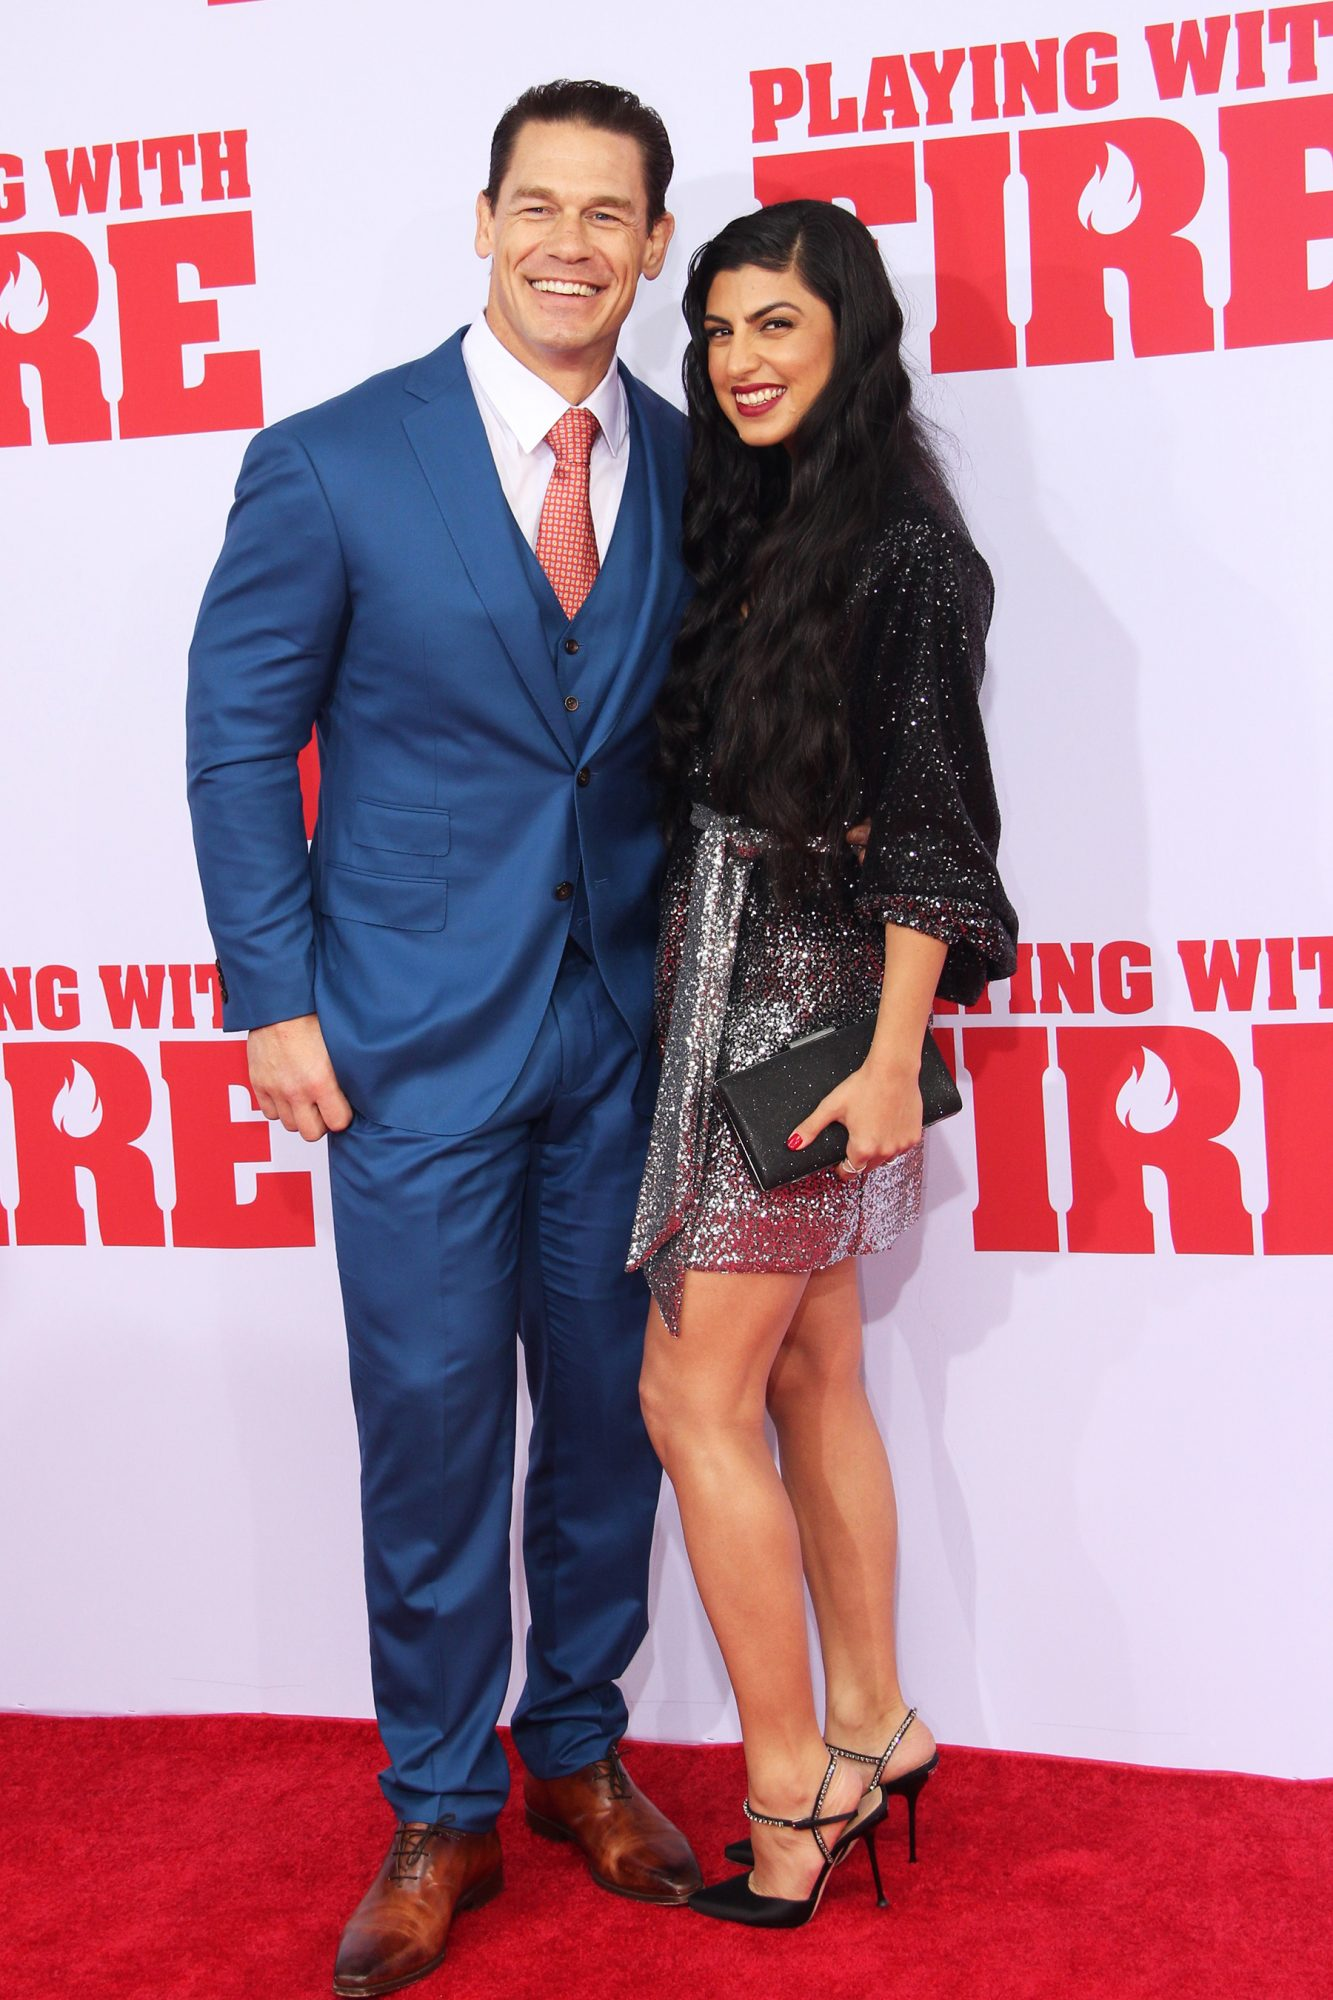 John Cena and Shay Shariatzadeh